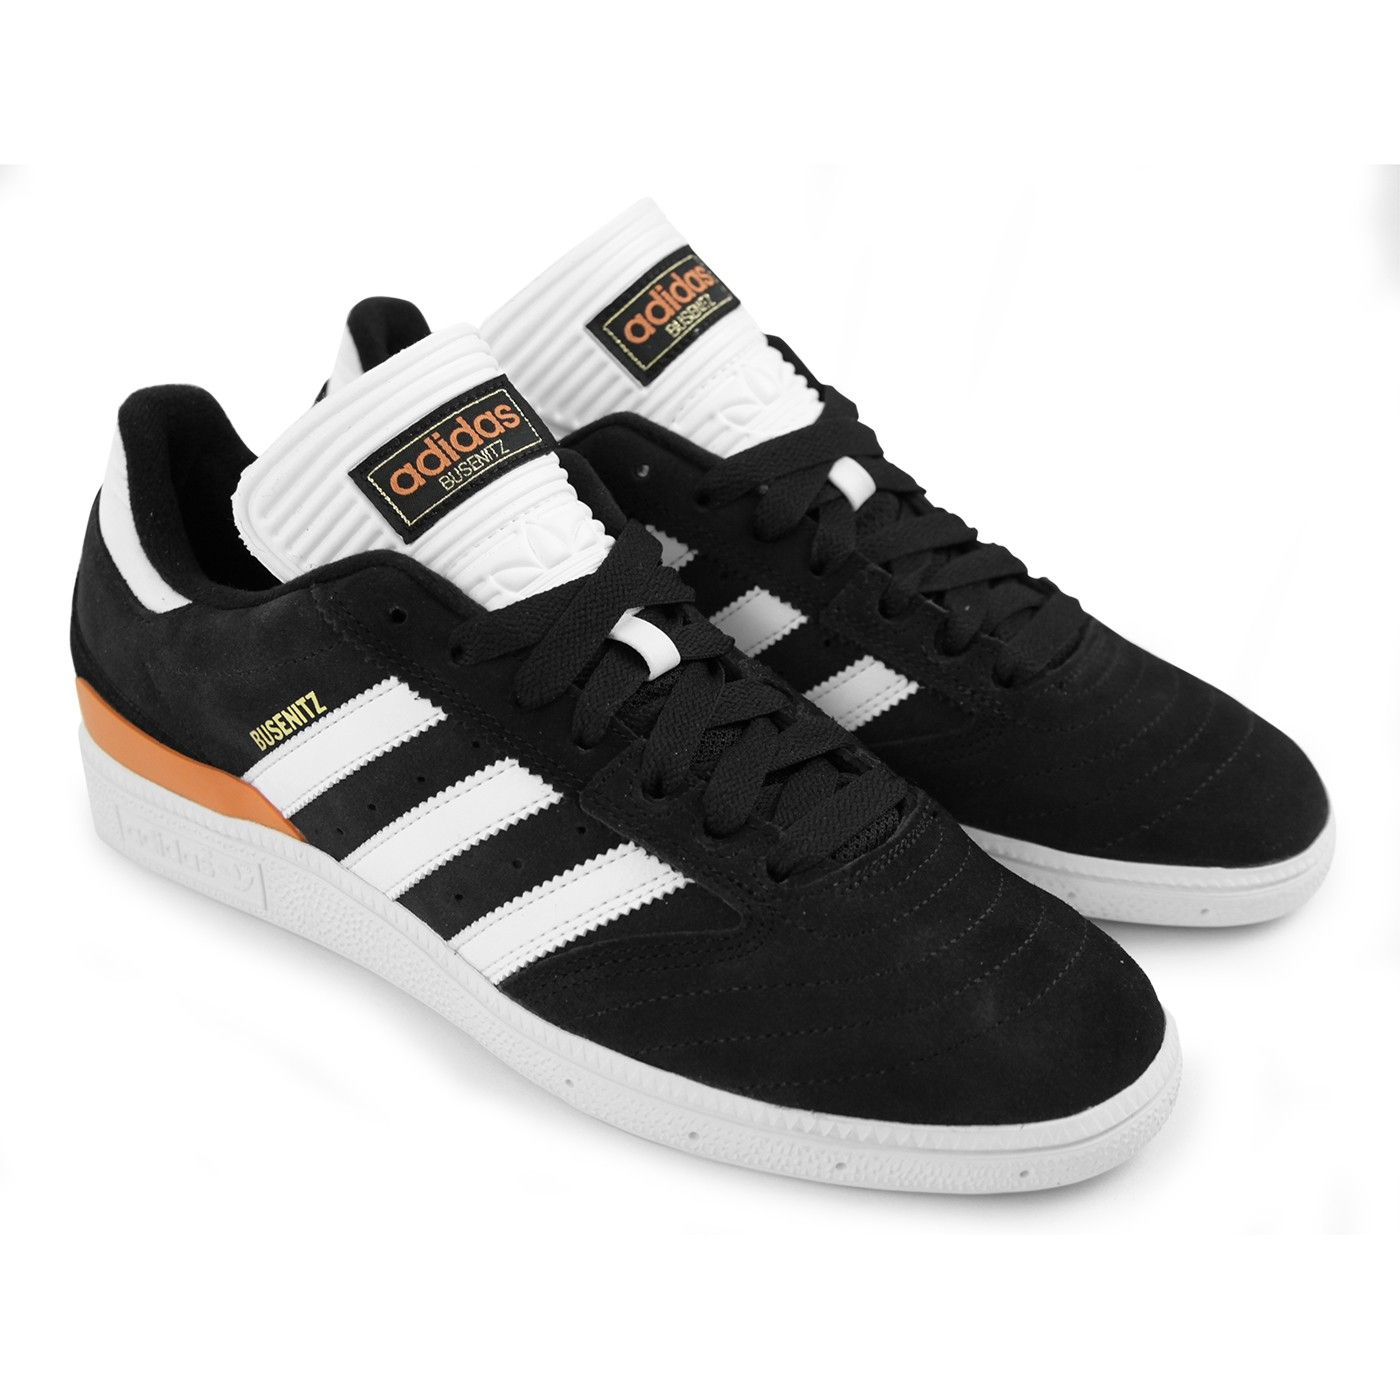 cheap for discount 97c6f cf8e4 Busenitz Shoes in Core Black  White  Craft Orange by Adidas Skateboarding